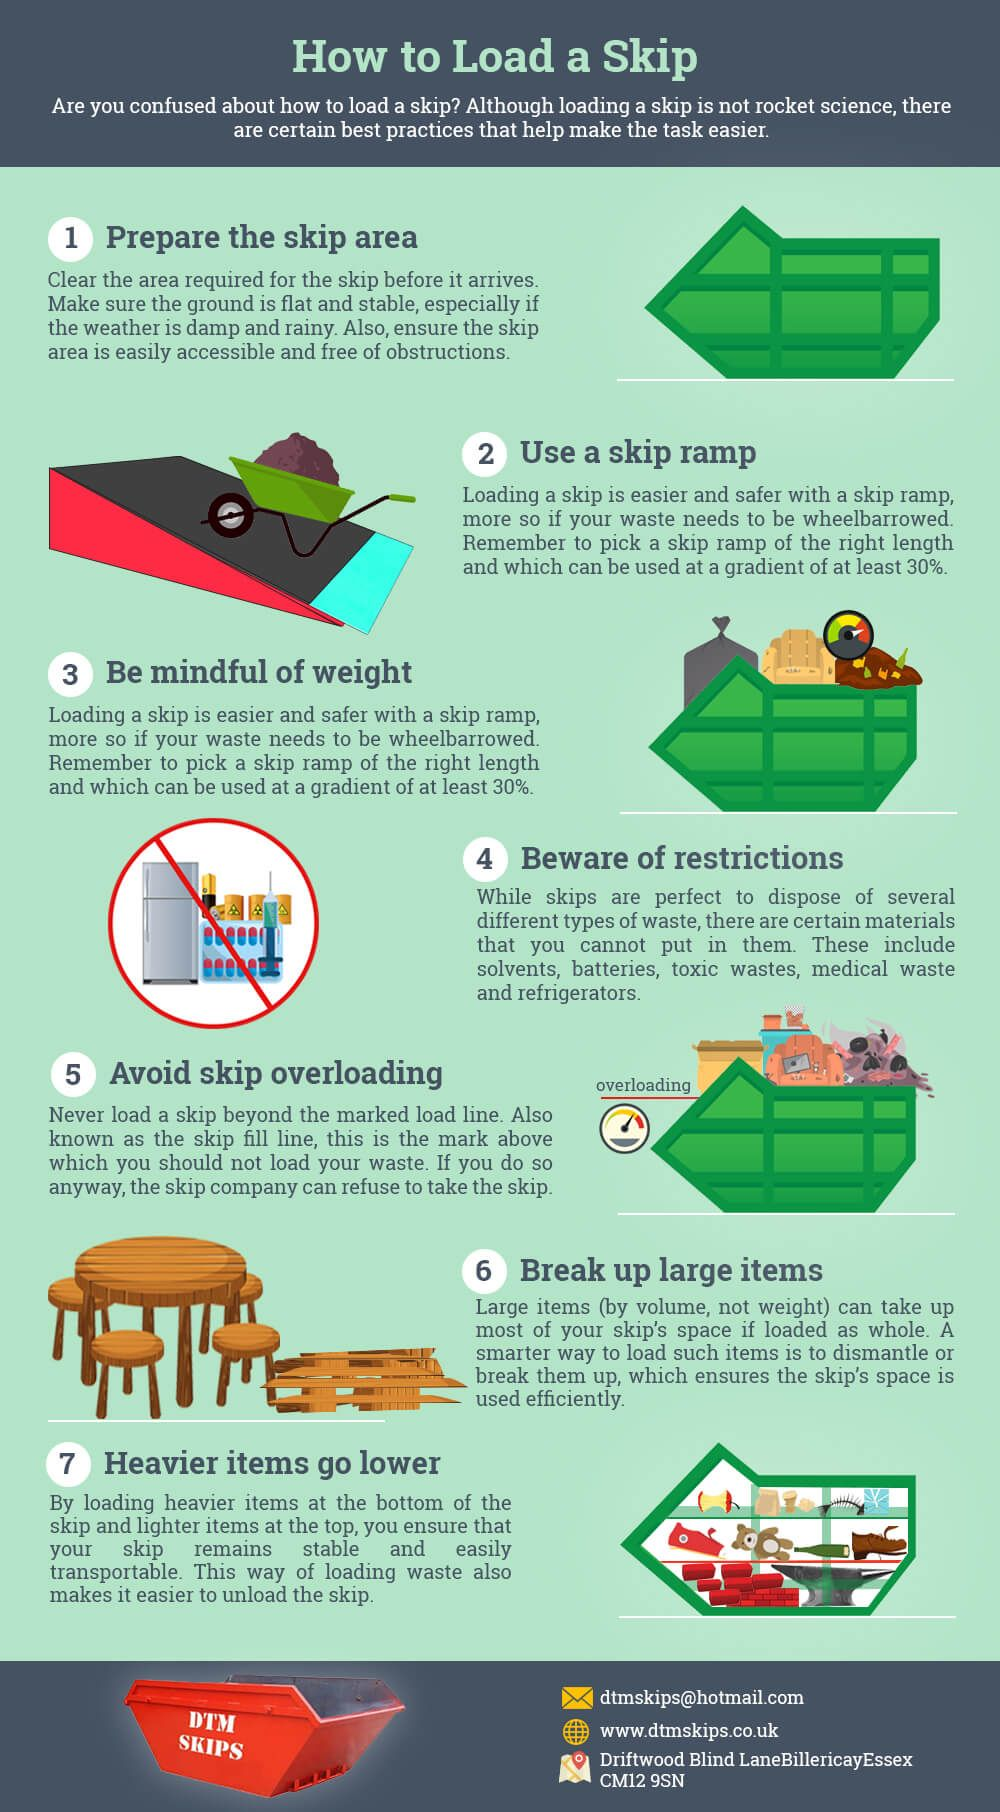 Loading A Skip In The Right Way Is Important Not Only Does It Make Things Easier For You And The Skip Company But Also Saves Yo Loaded Infographic How To Make